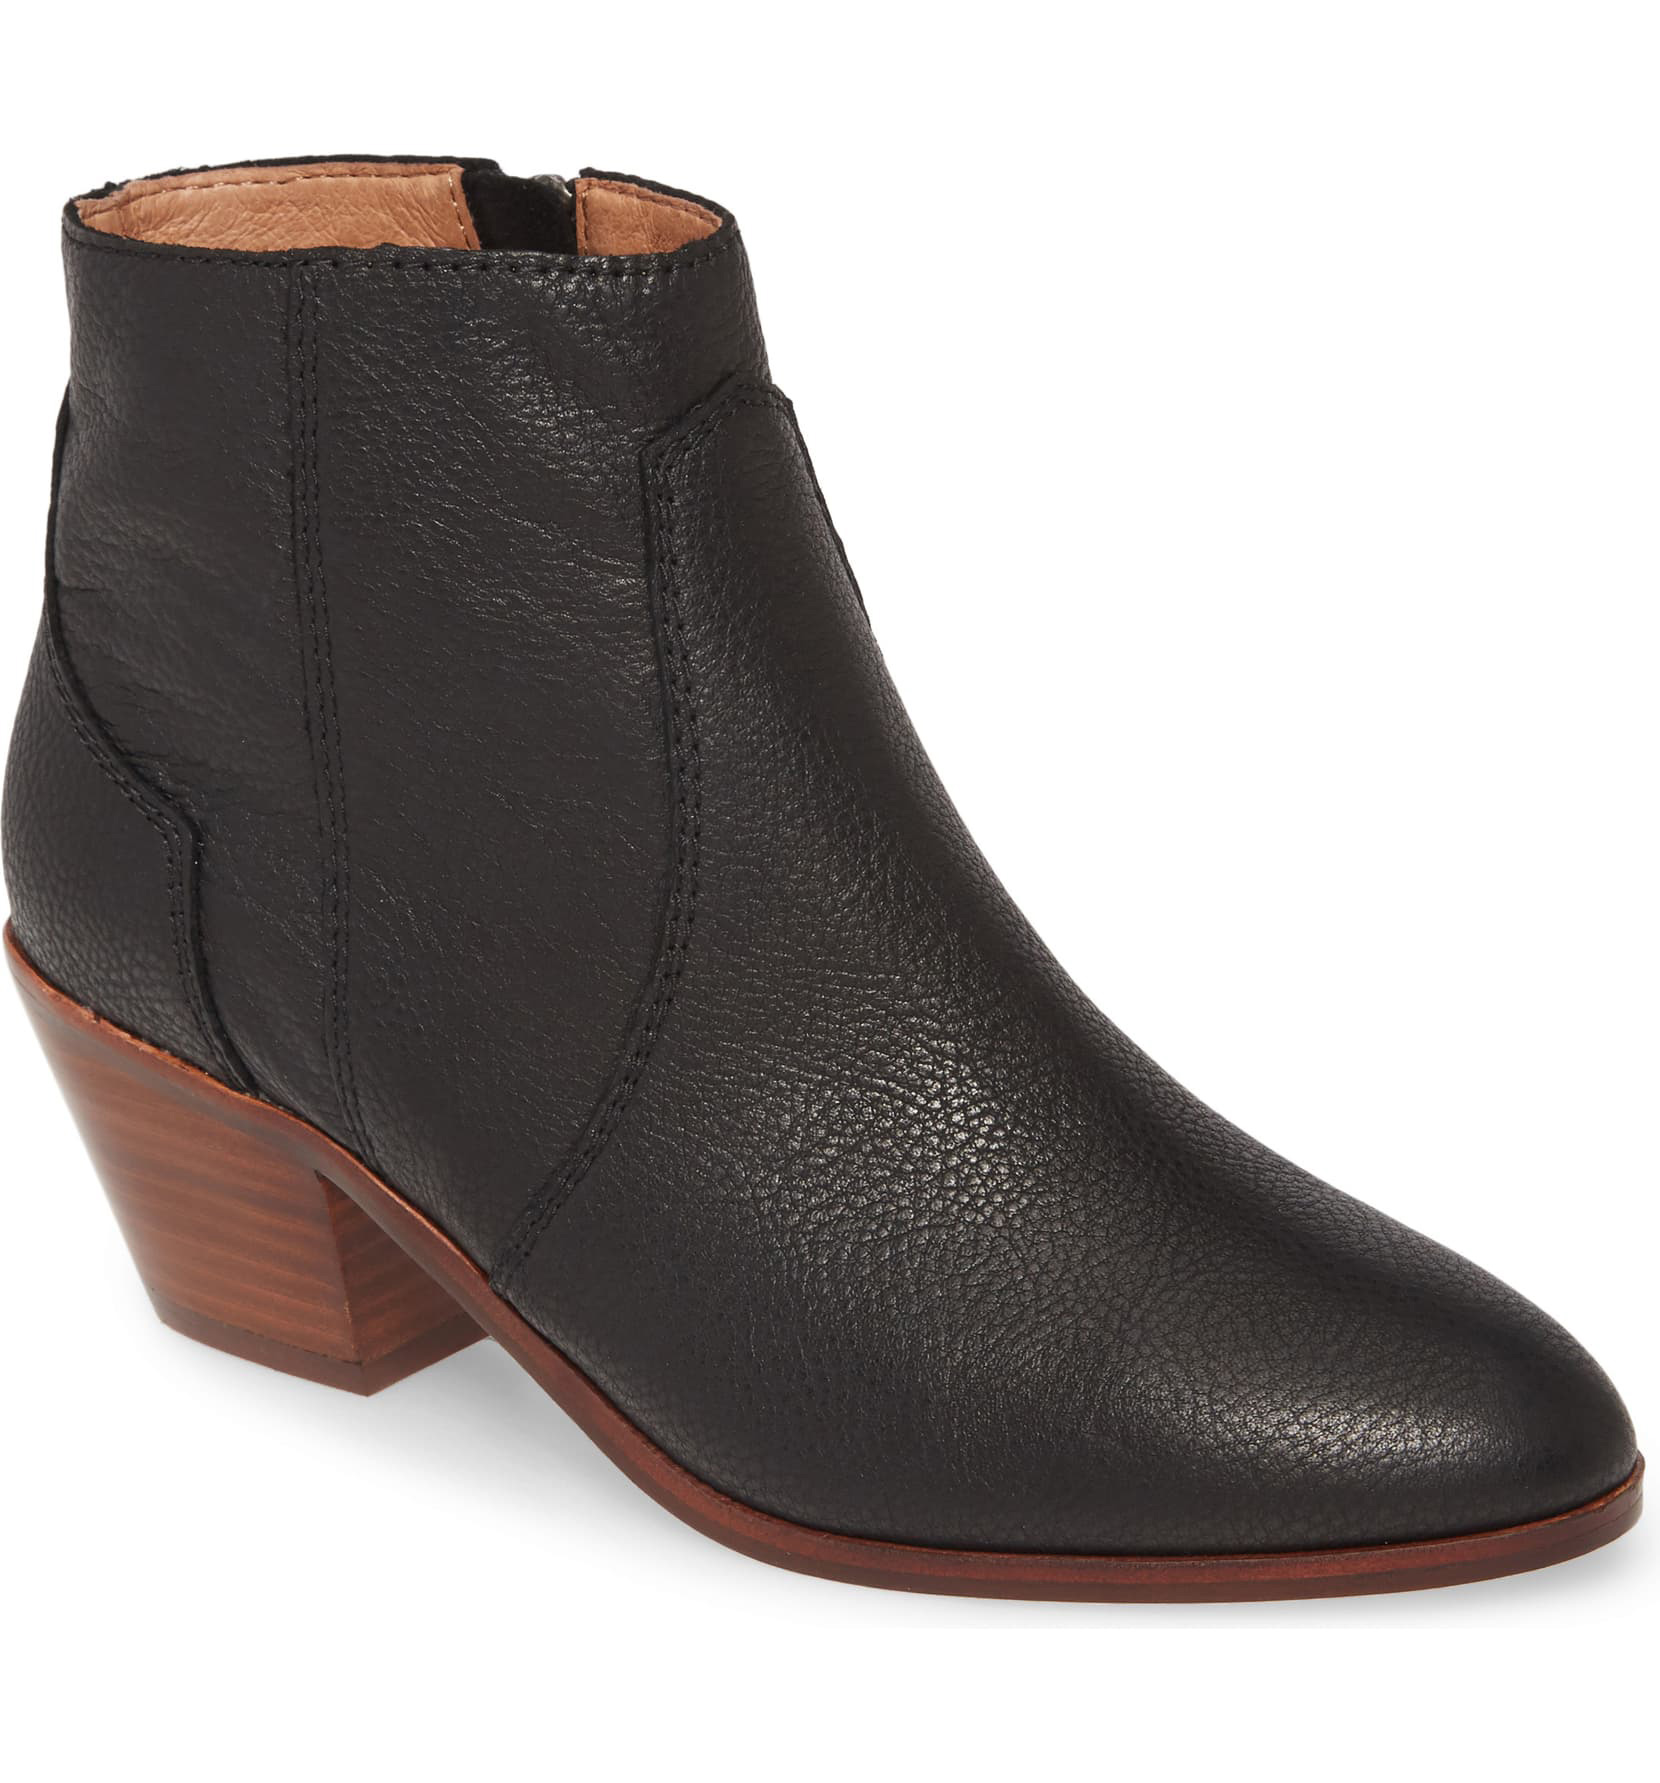 The Western Leather Boot MADEWELL